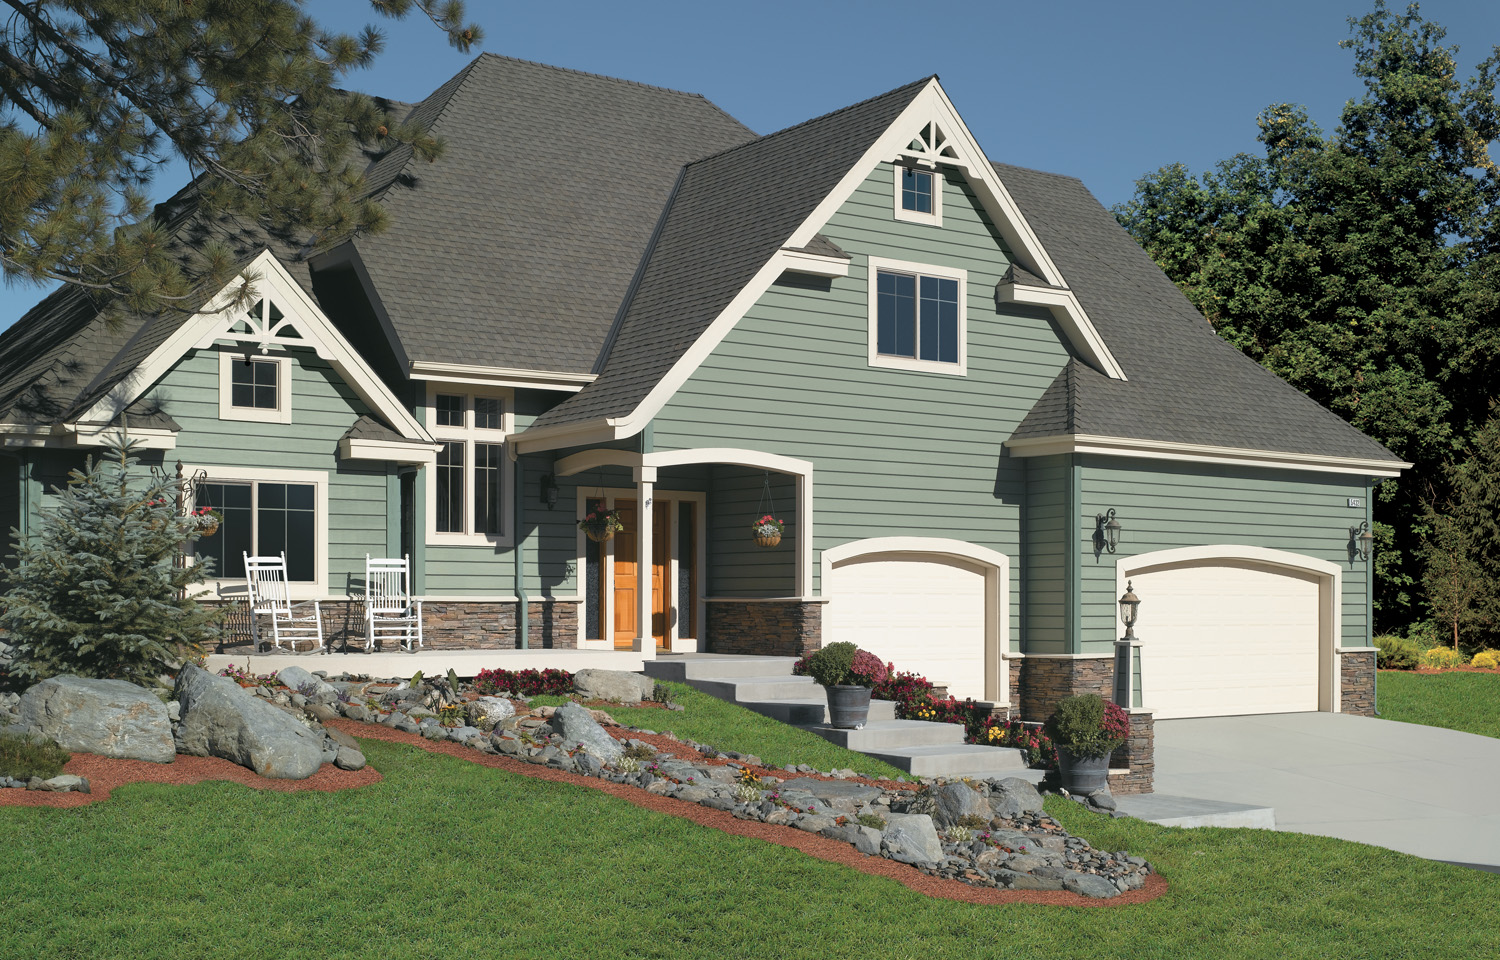 Mixed Materials - Exterior House Siding Ideas